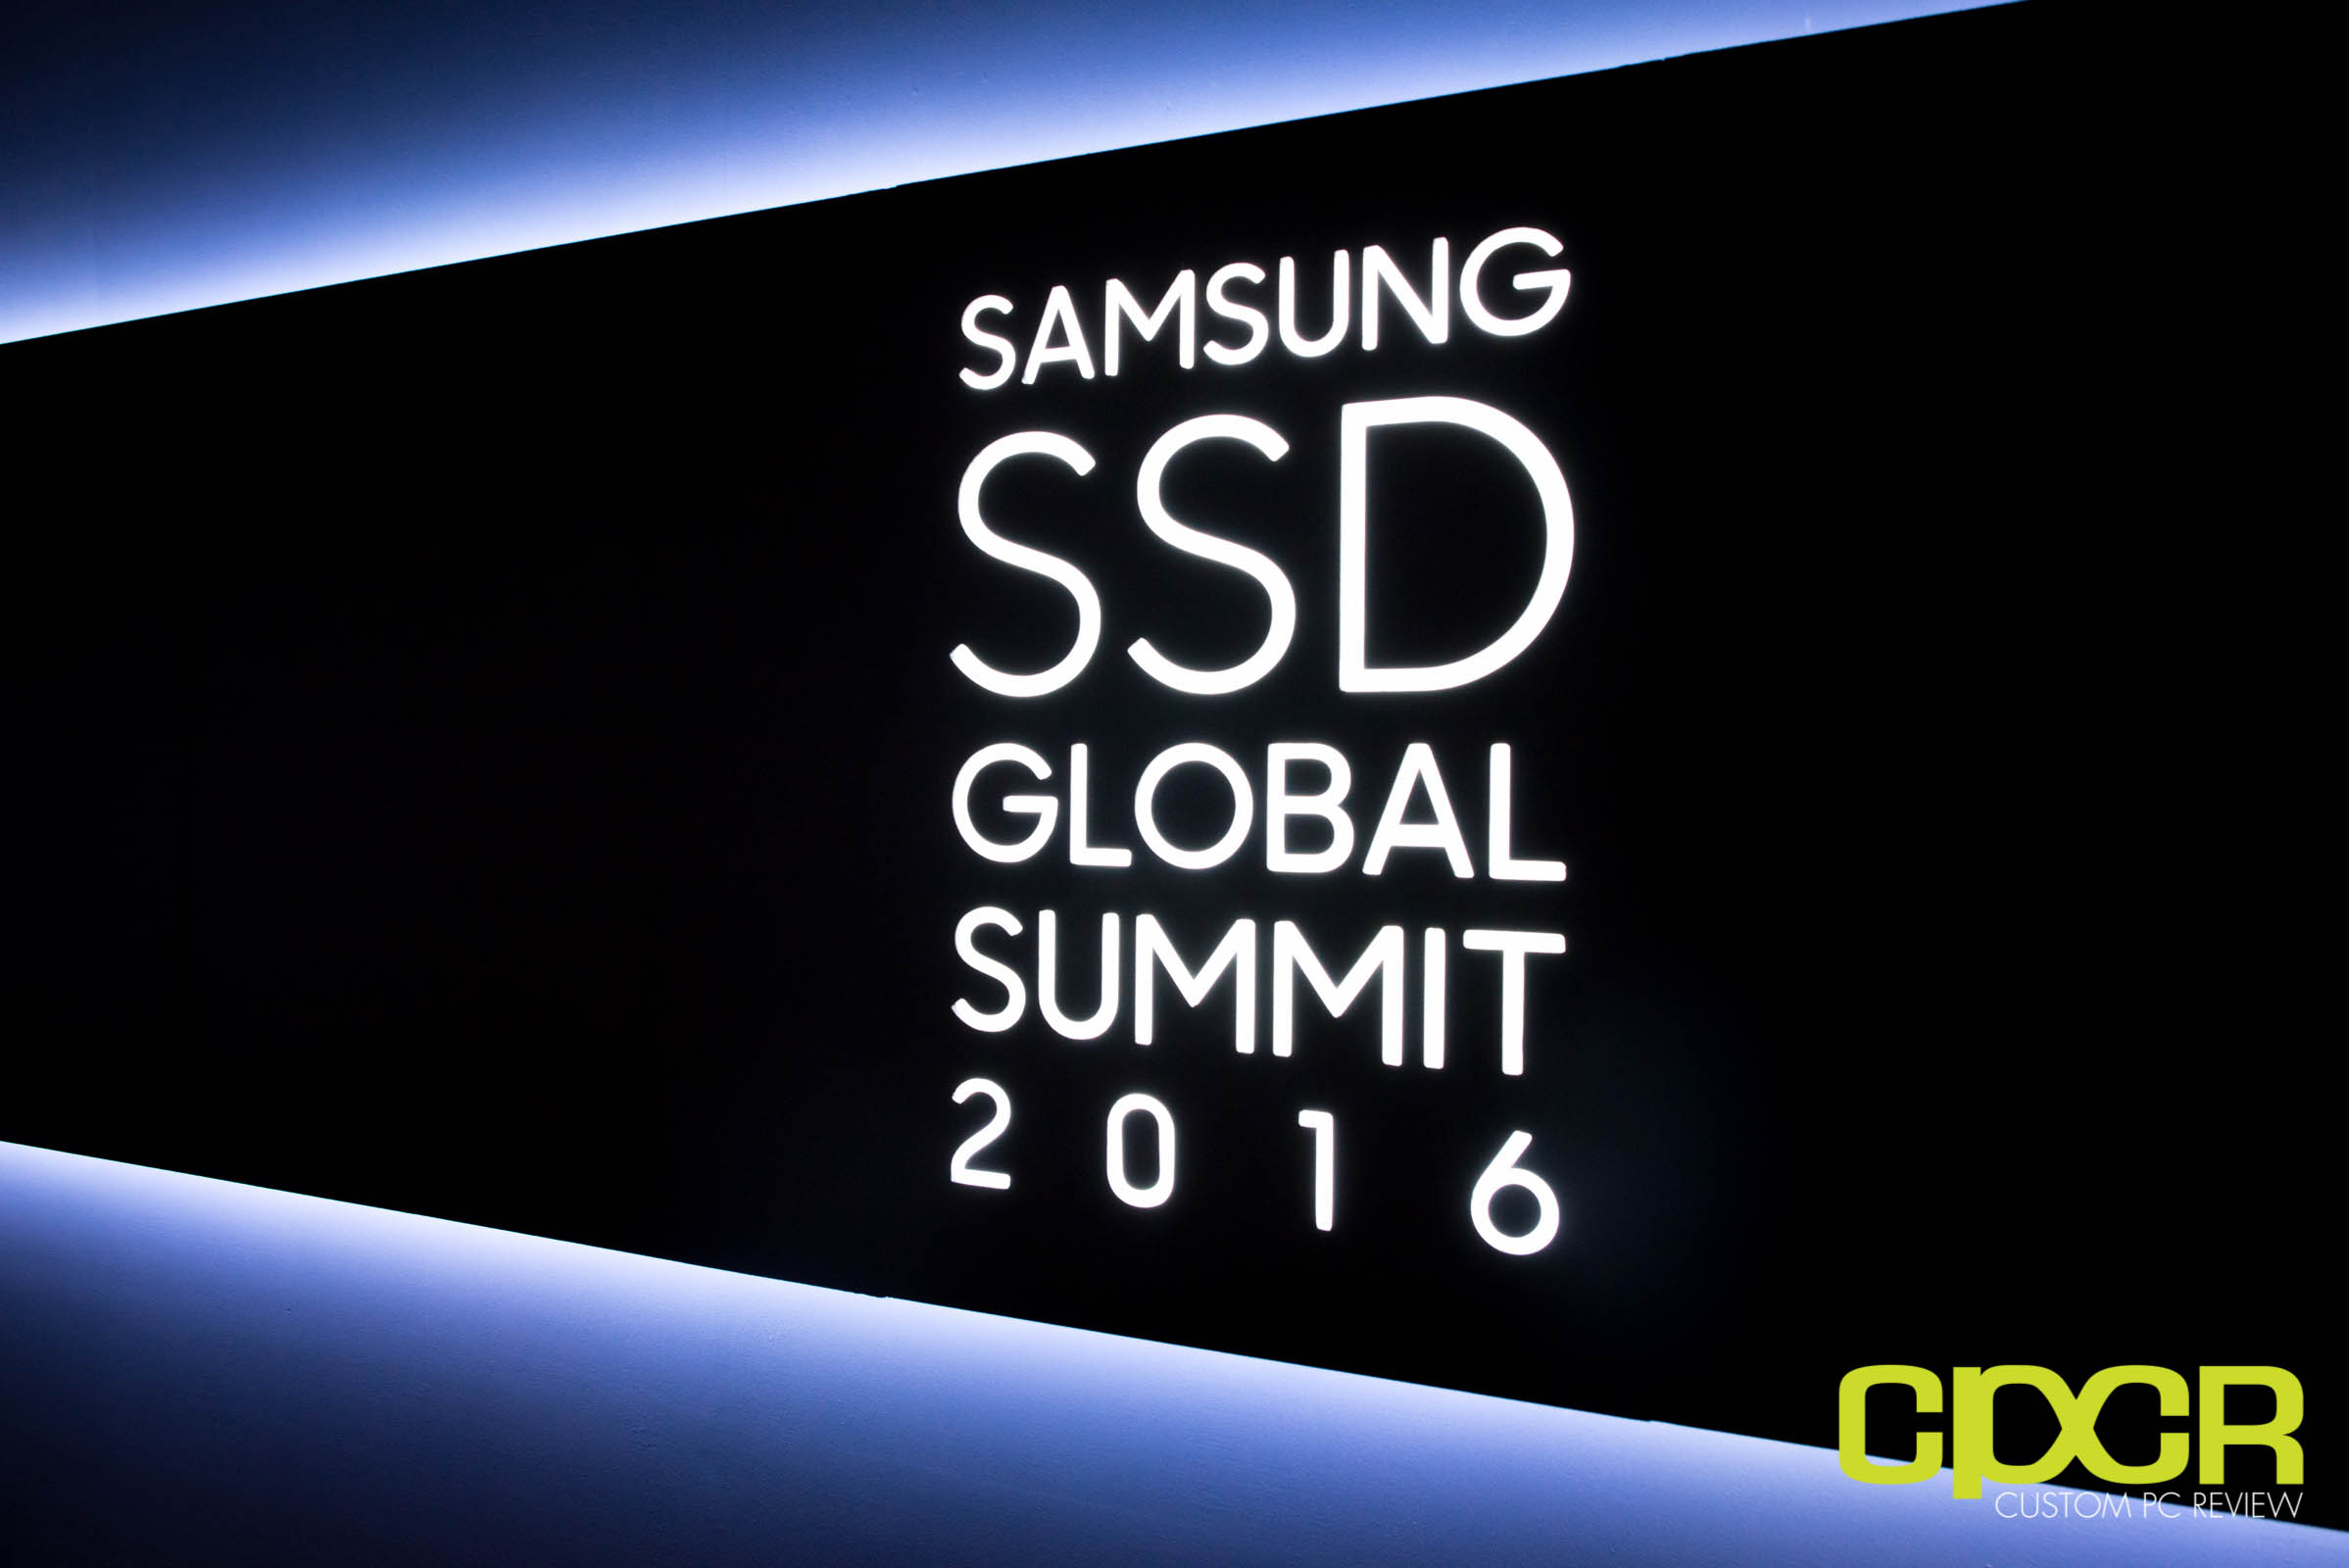 Best Internal Ssd 2020 Samsung Expects 512GB SSD, 1TB HDD to Reach Price Parity in 2020